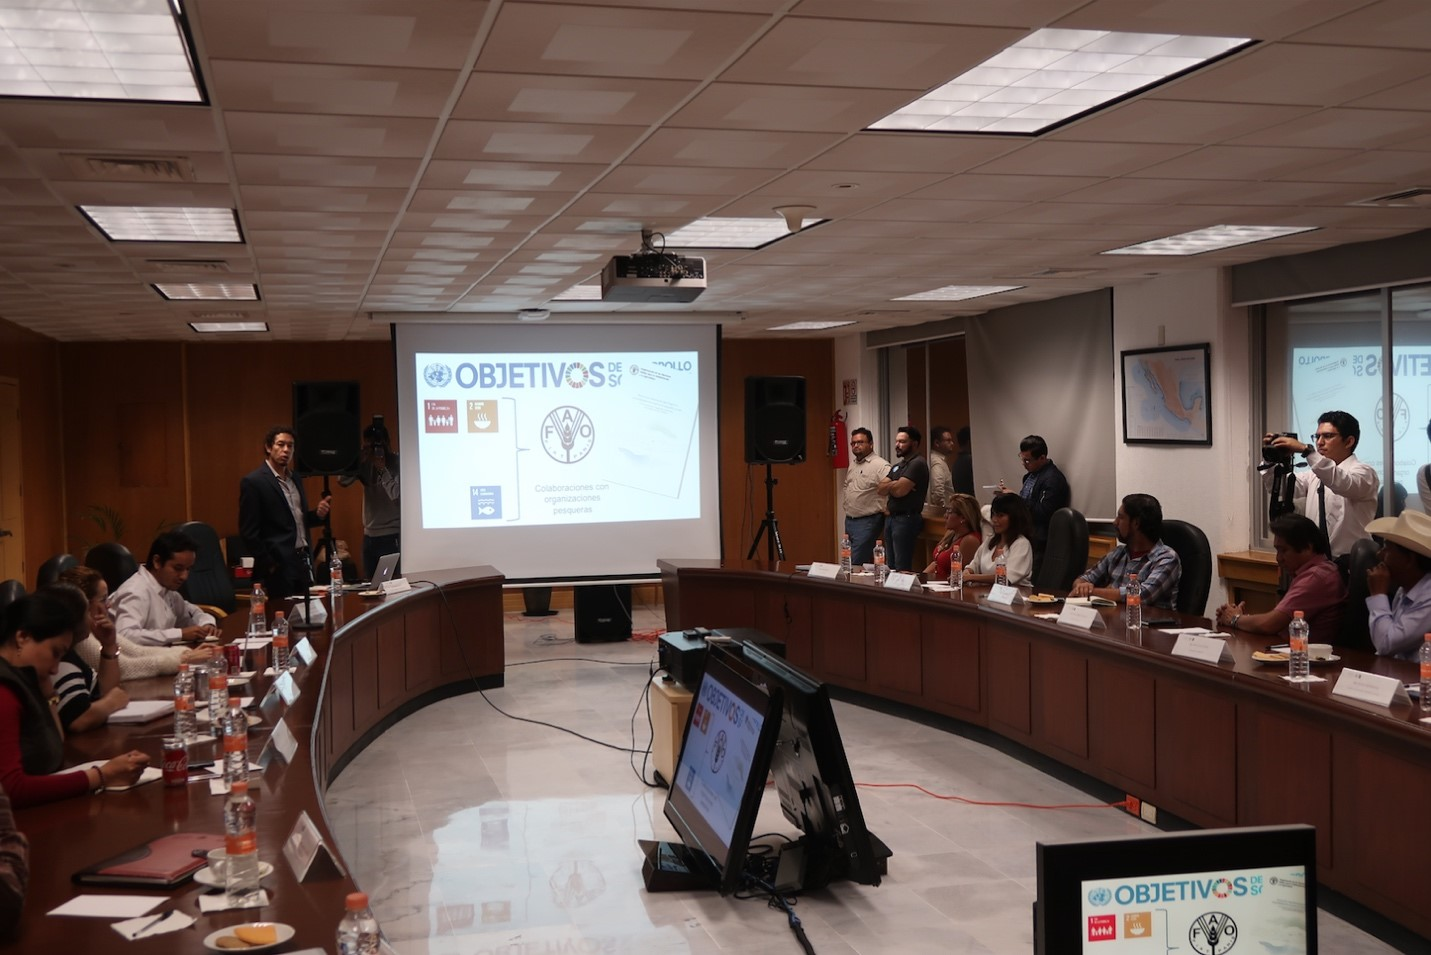 Xavier Basurto presents the study's findings, recommendations for policy, and future steps to the top fisheries officials in Mexico. Photo: Amy Hudson Weaver, January 2018.